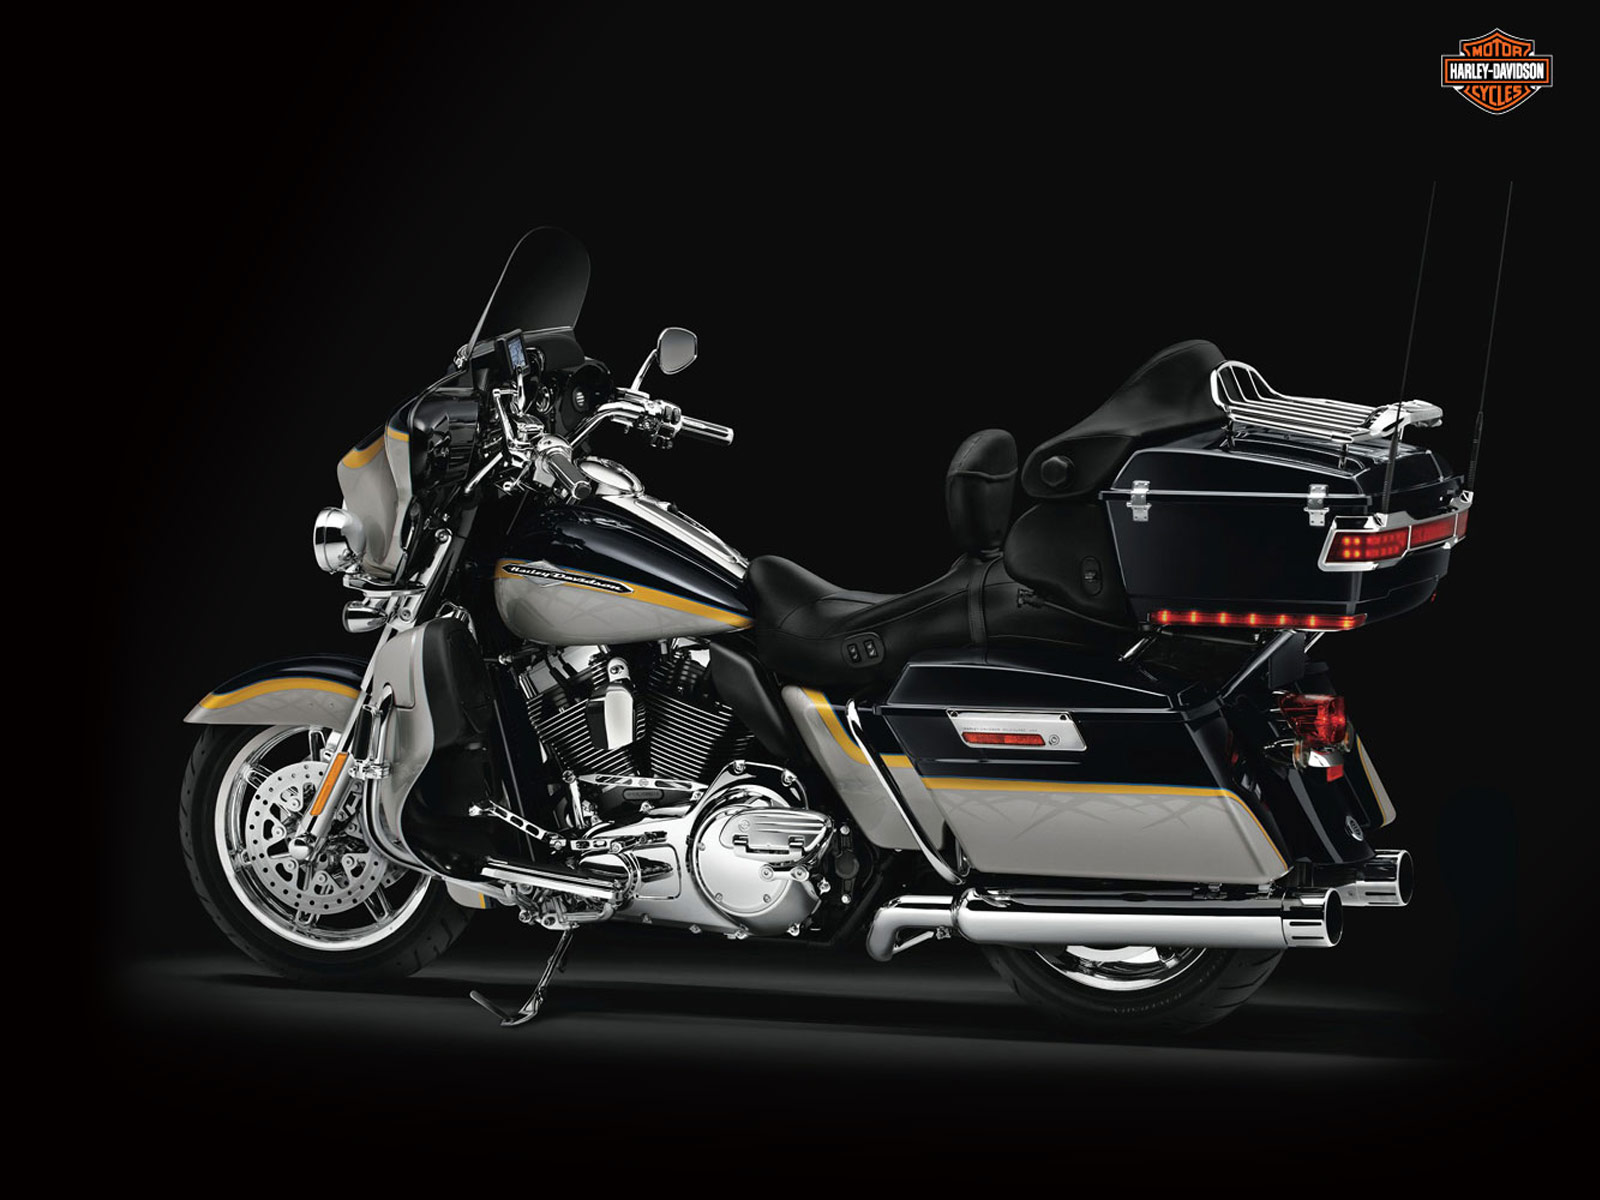 2012 hd flhtcuse7 cvo ultra classic electra glide. Black Bedroom Furniture Sets. Home Design Ideas